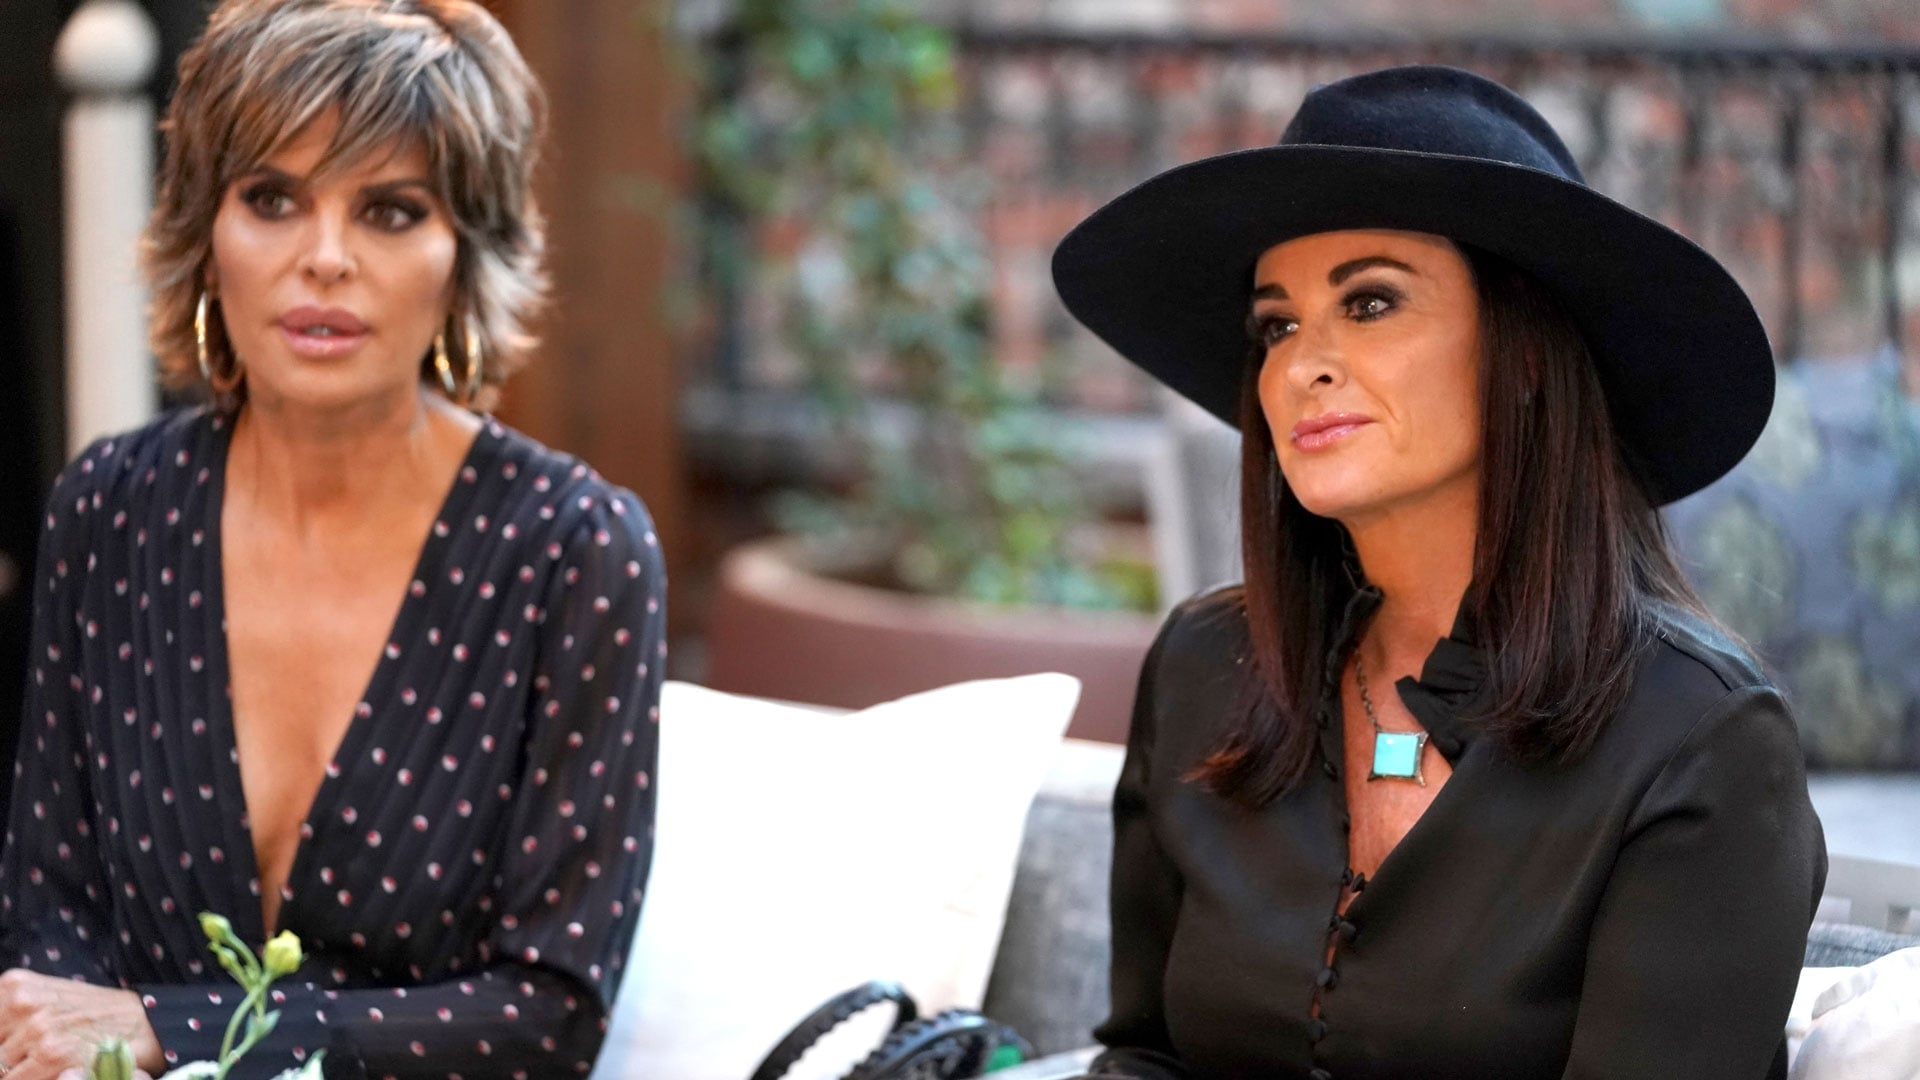 real housewives of beverly hills season 4 episode 2 videobull